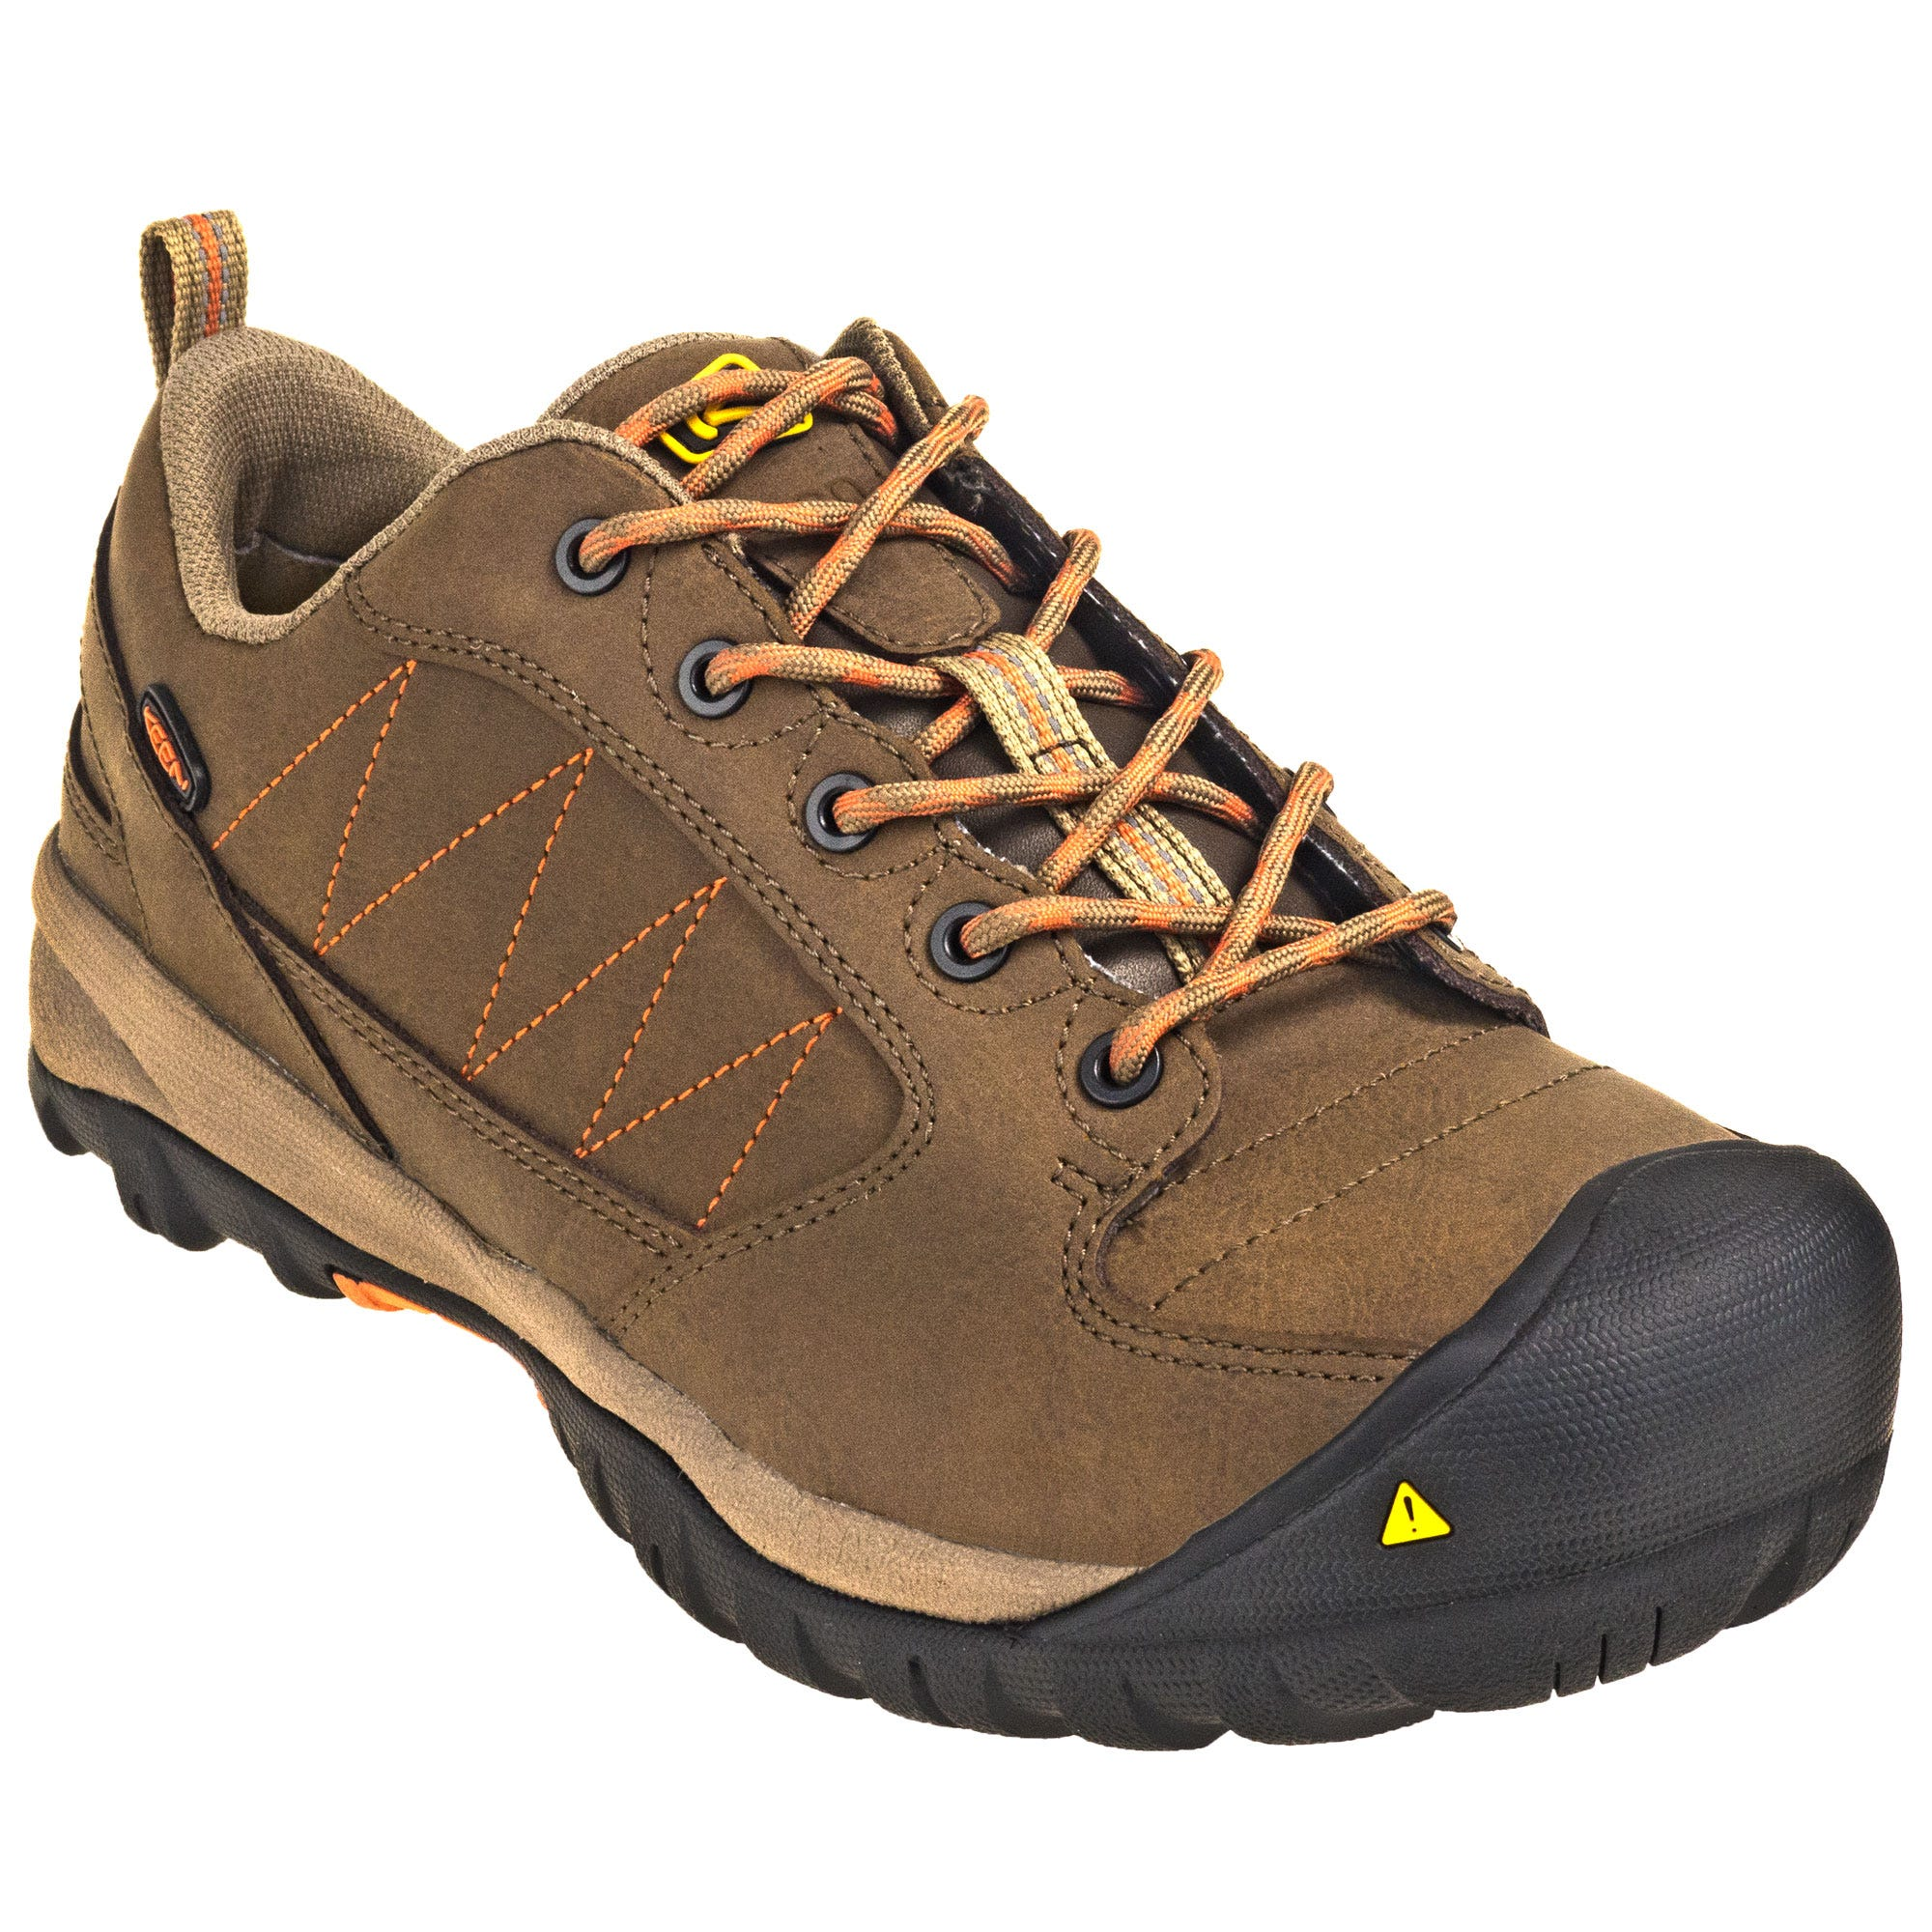 Women's KEEN Utility 1011356 Mesa Steel Toe Shoes